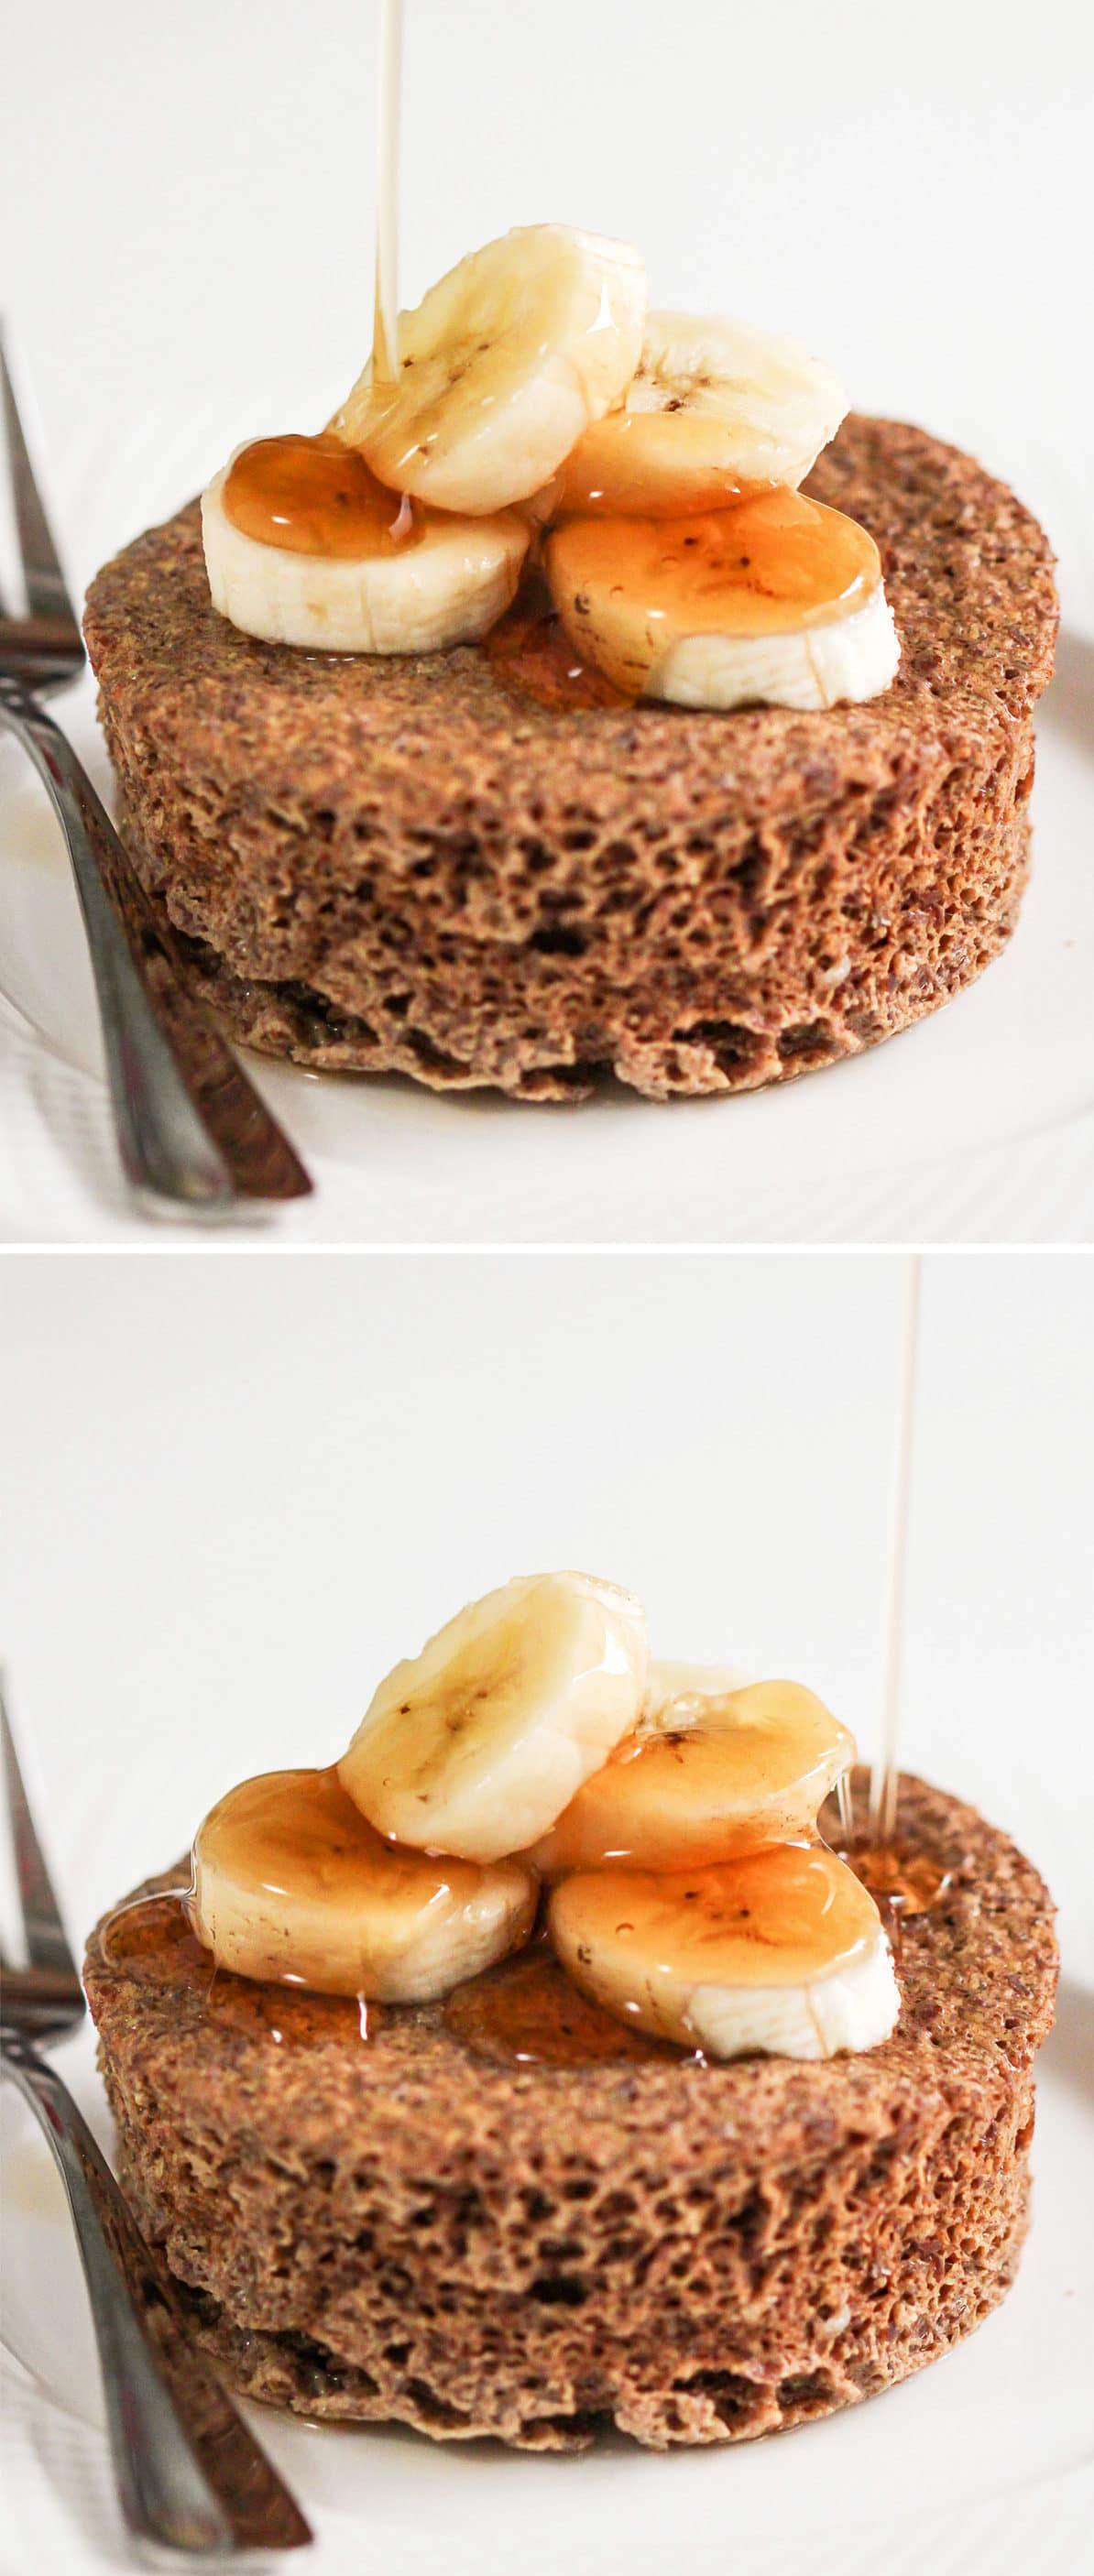 You can make this Healthy Single-Serving Flaxseed Microwave Muffin in just 5 minutes flat! This soft, springy, sweet, and hearty muffins makes the perfect balanced breakfast, snack, and dessert. It's hard to believe it's sugar free, low carb, high protein, high fiber, AND gluten free too! Plus, it's full of nutritious omega-3 fatty acids, vitamins and minerals. Healthy dessert recipes at the Desserts With Benefits Blog (www.DessertsWithBenefits.com)